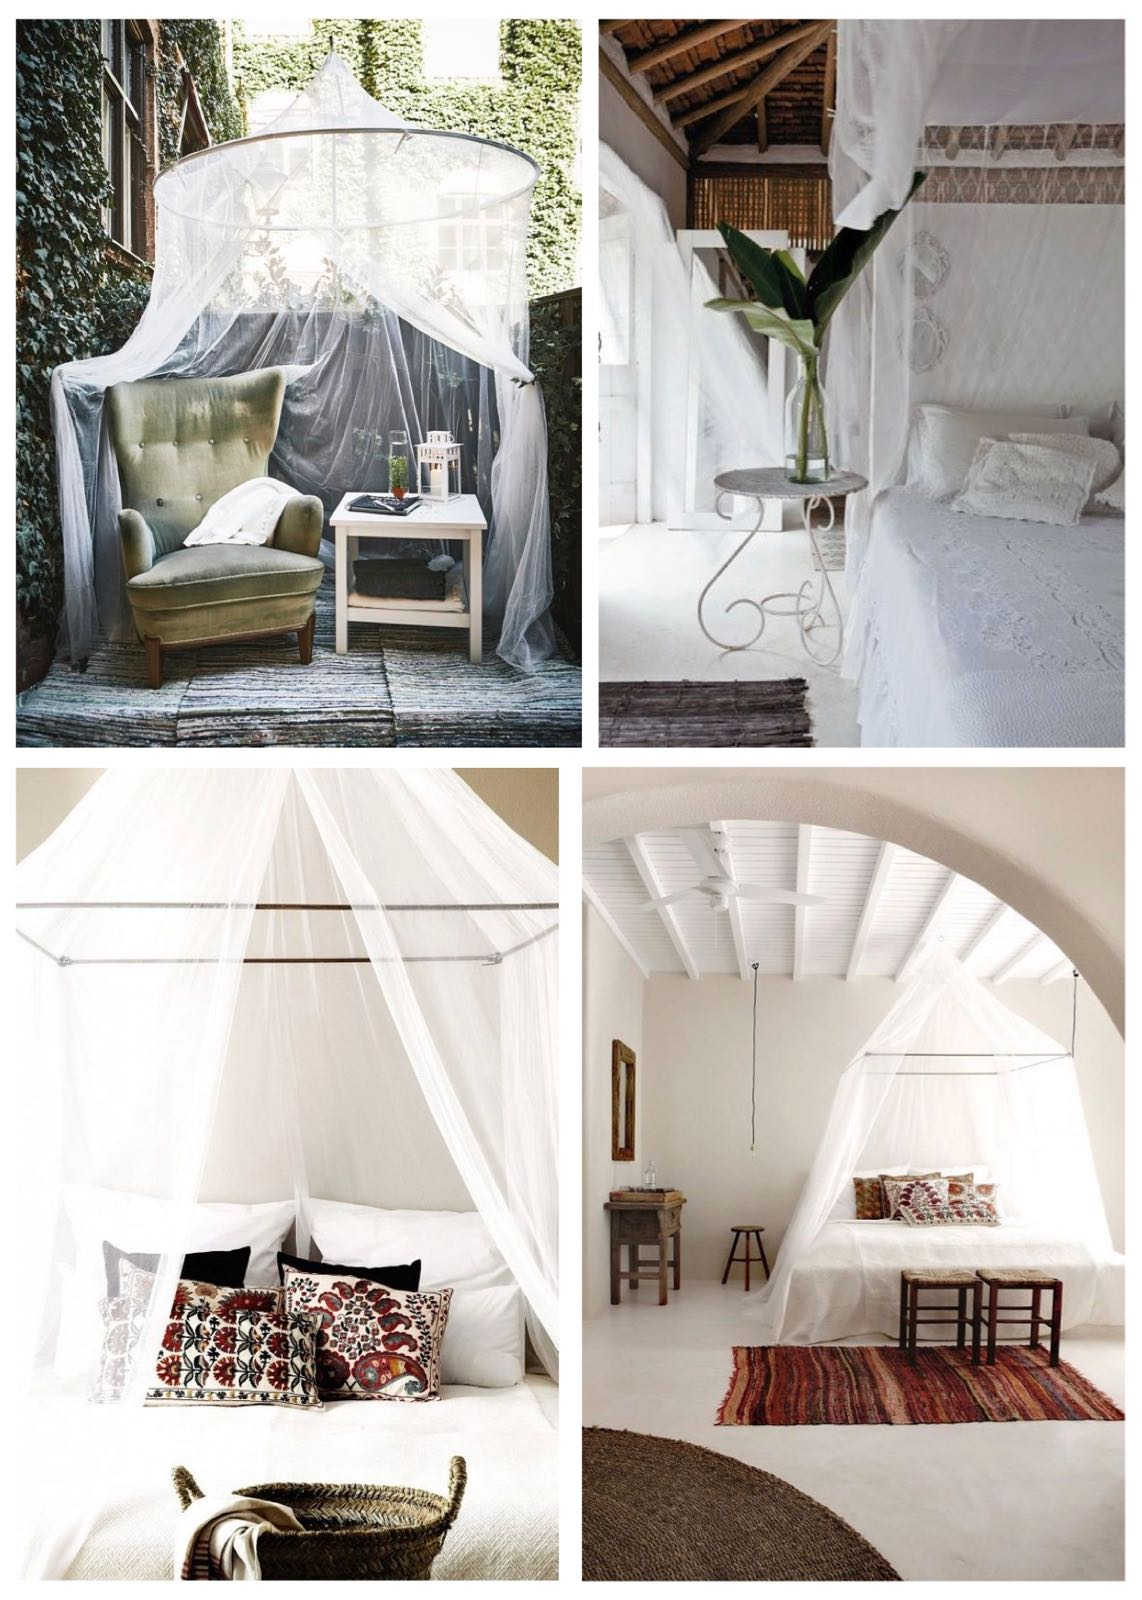 how to hang a mosquito net mosquito net inspiration